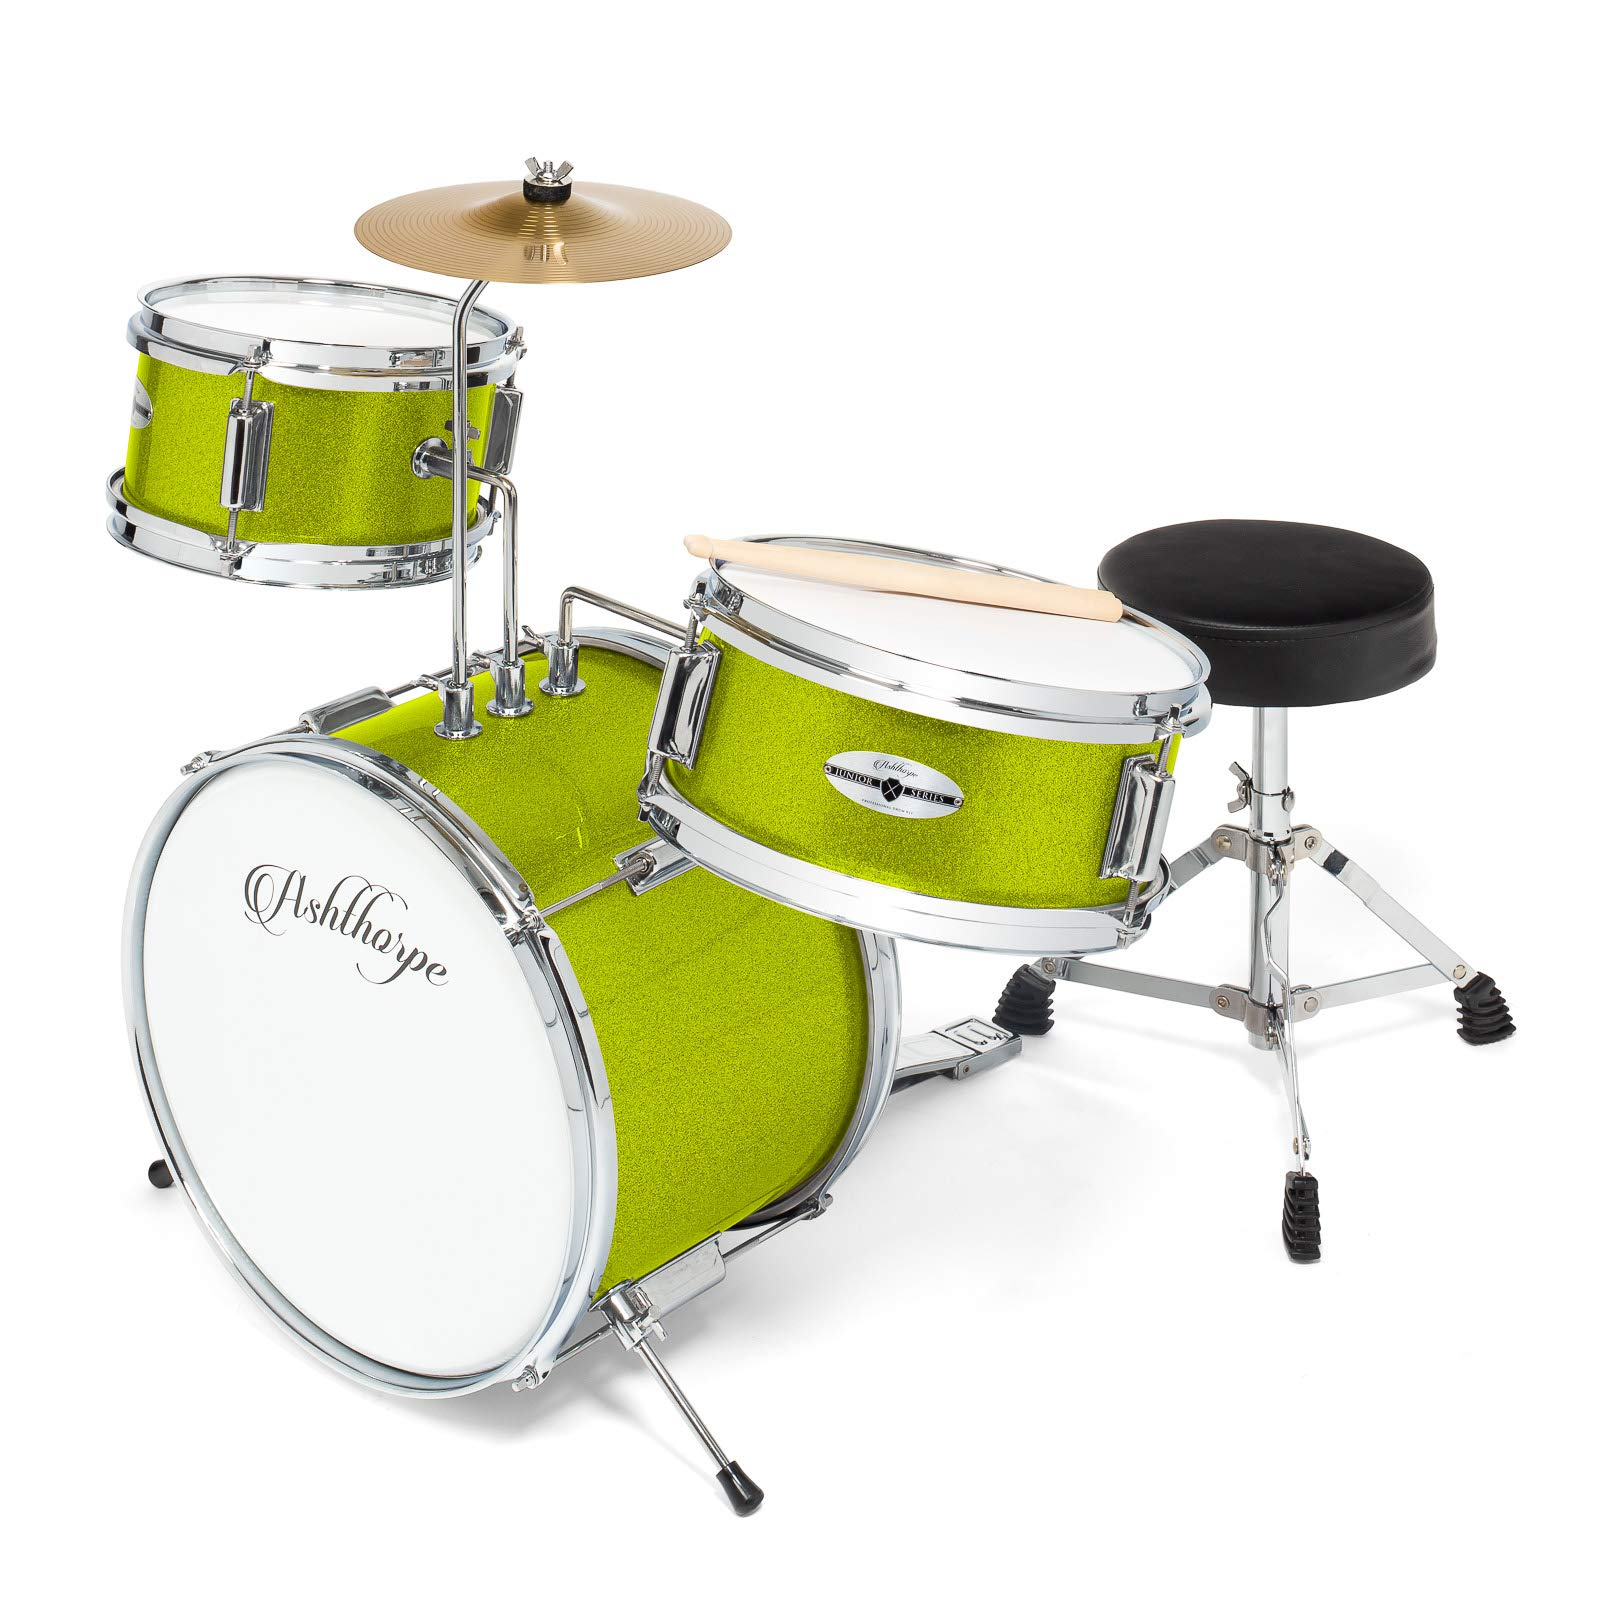 Ashthorpe 3-Piece Complete Kid's Junior Drum Set - Children's Beginner Kit with 14'' Bass, Adjustable Throne, Cymbal, Pedal & Drumsticks - Green